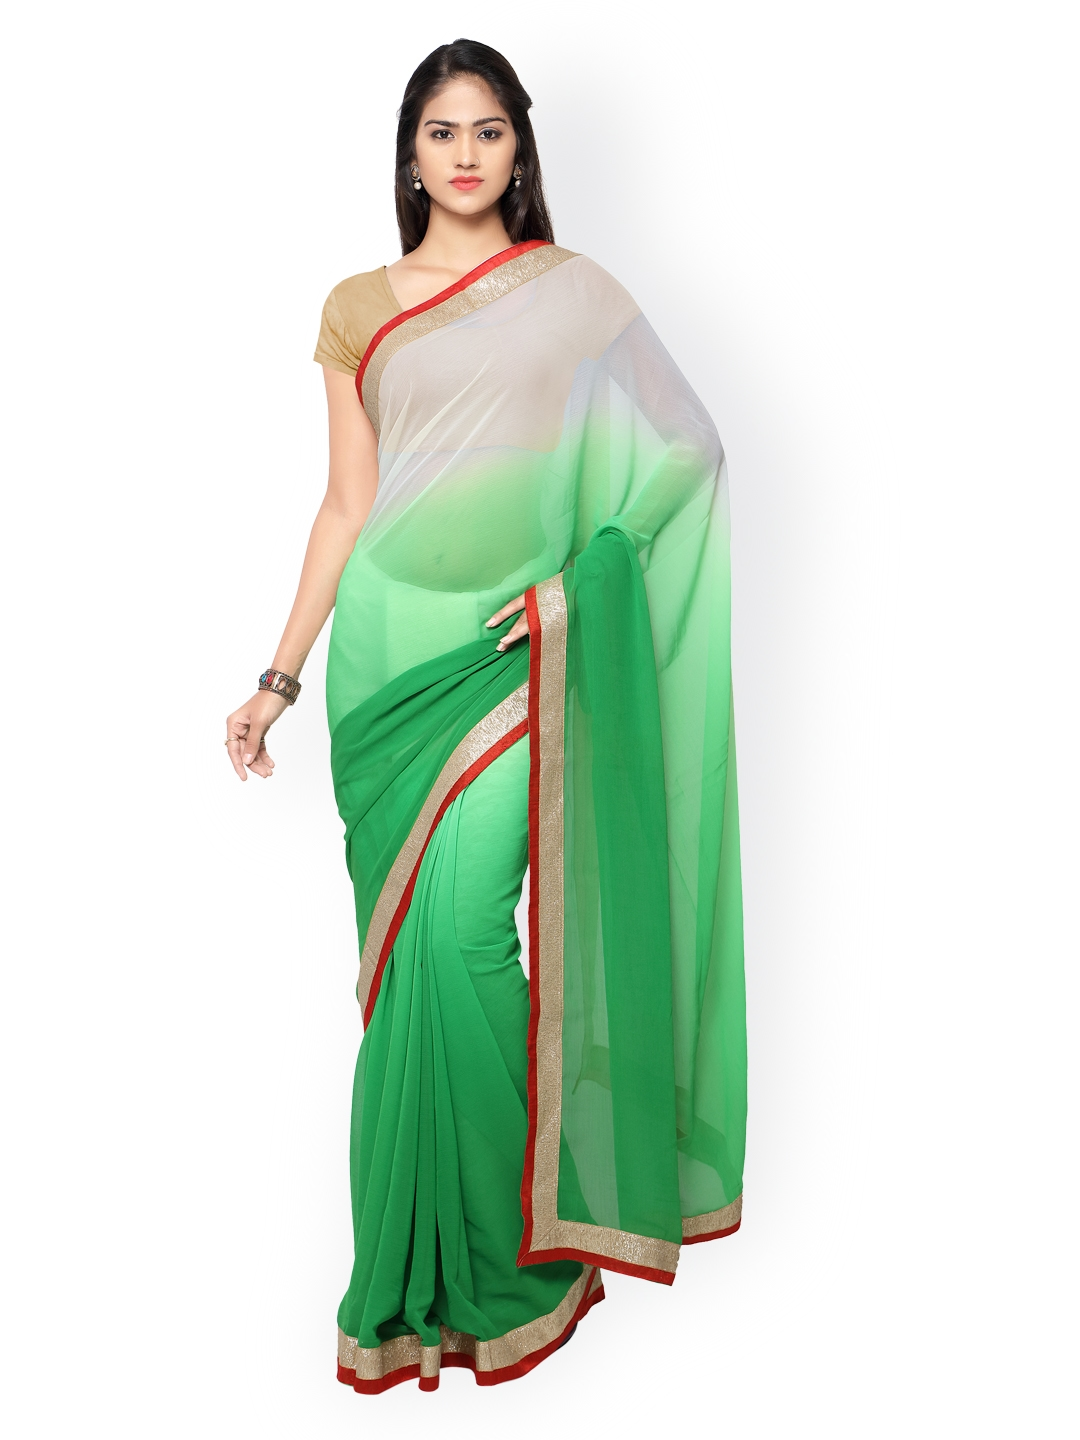 131de318099324 Buy Florence Green & White Ombre Dyed Chiffon Saree - Sarees for ...